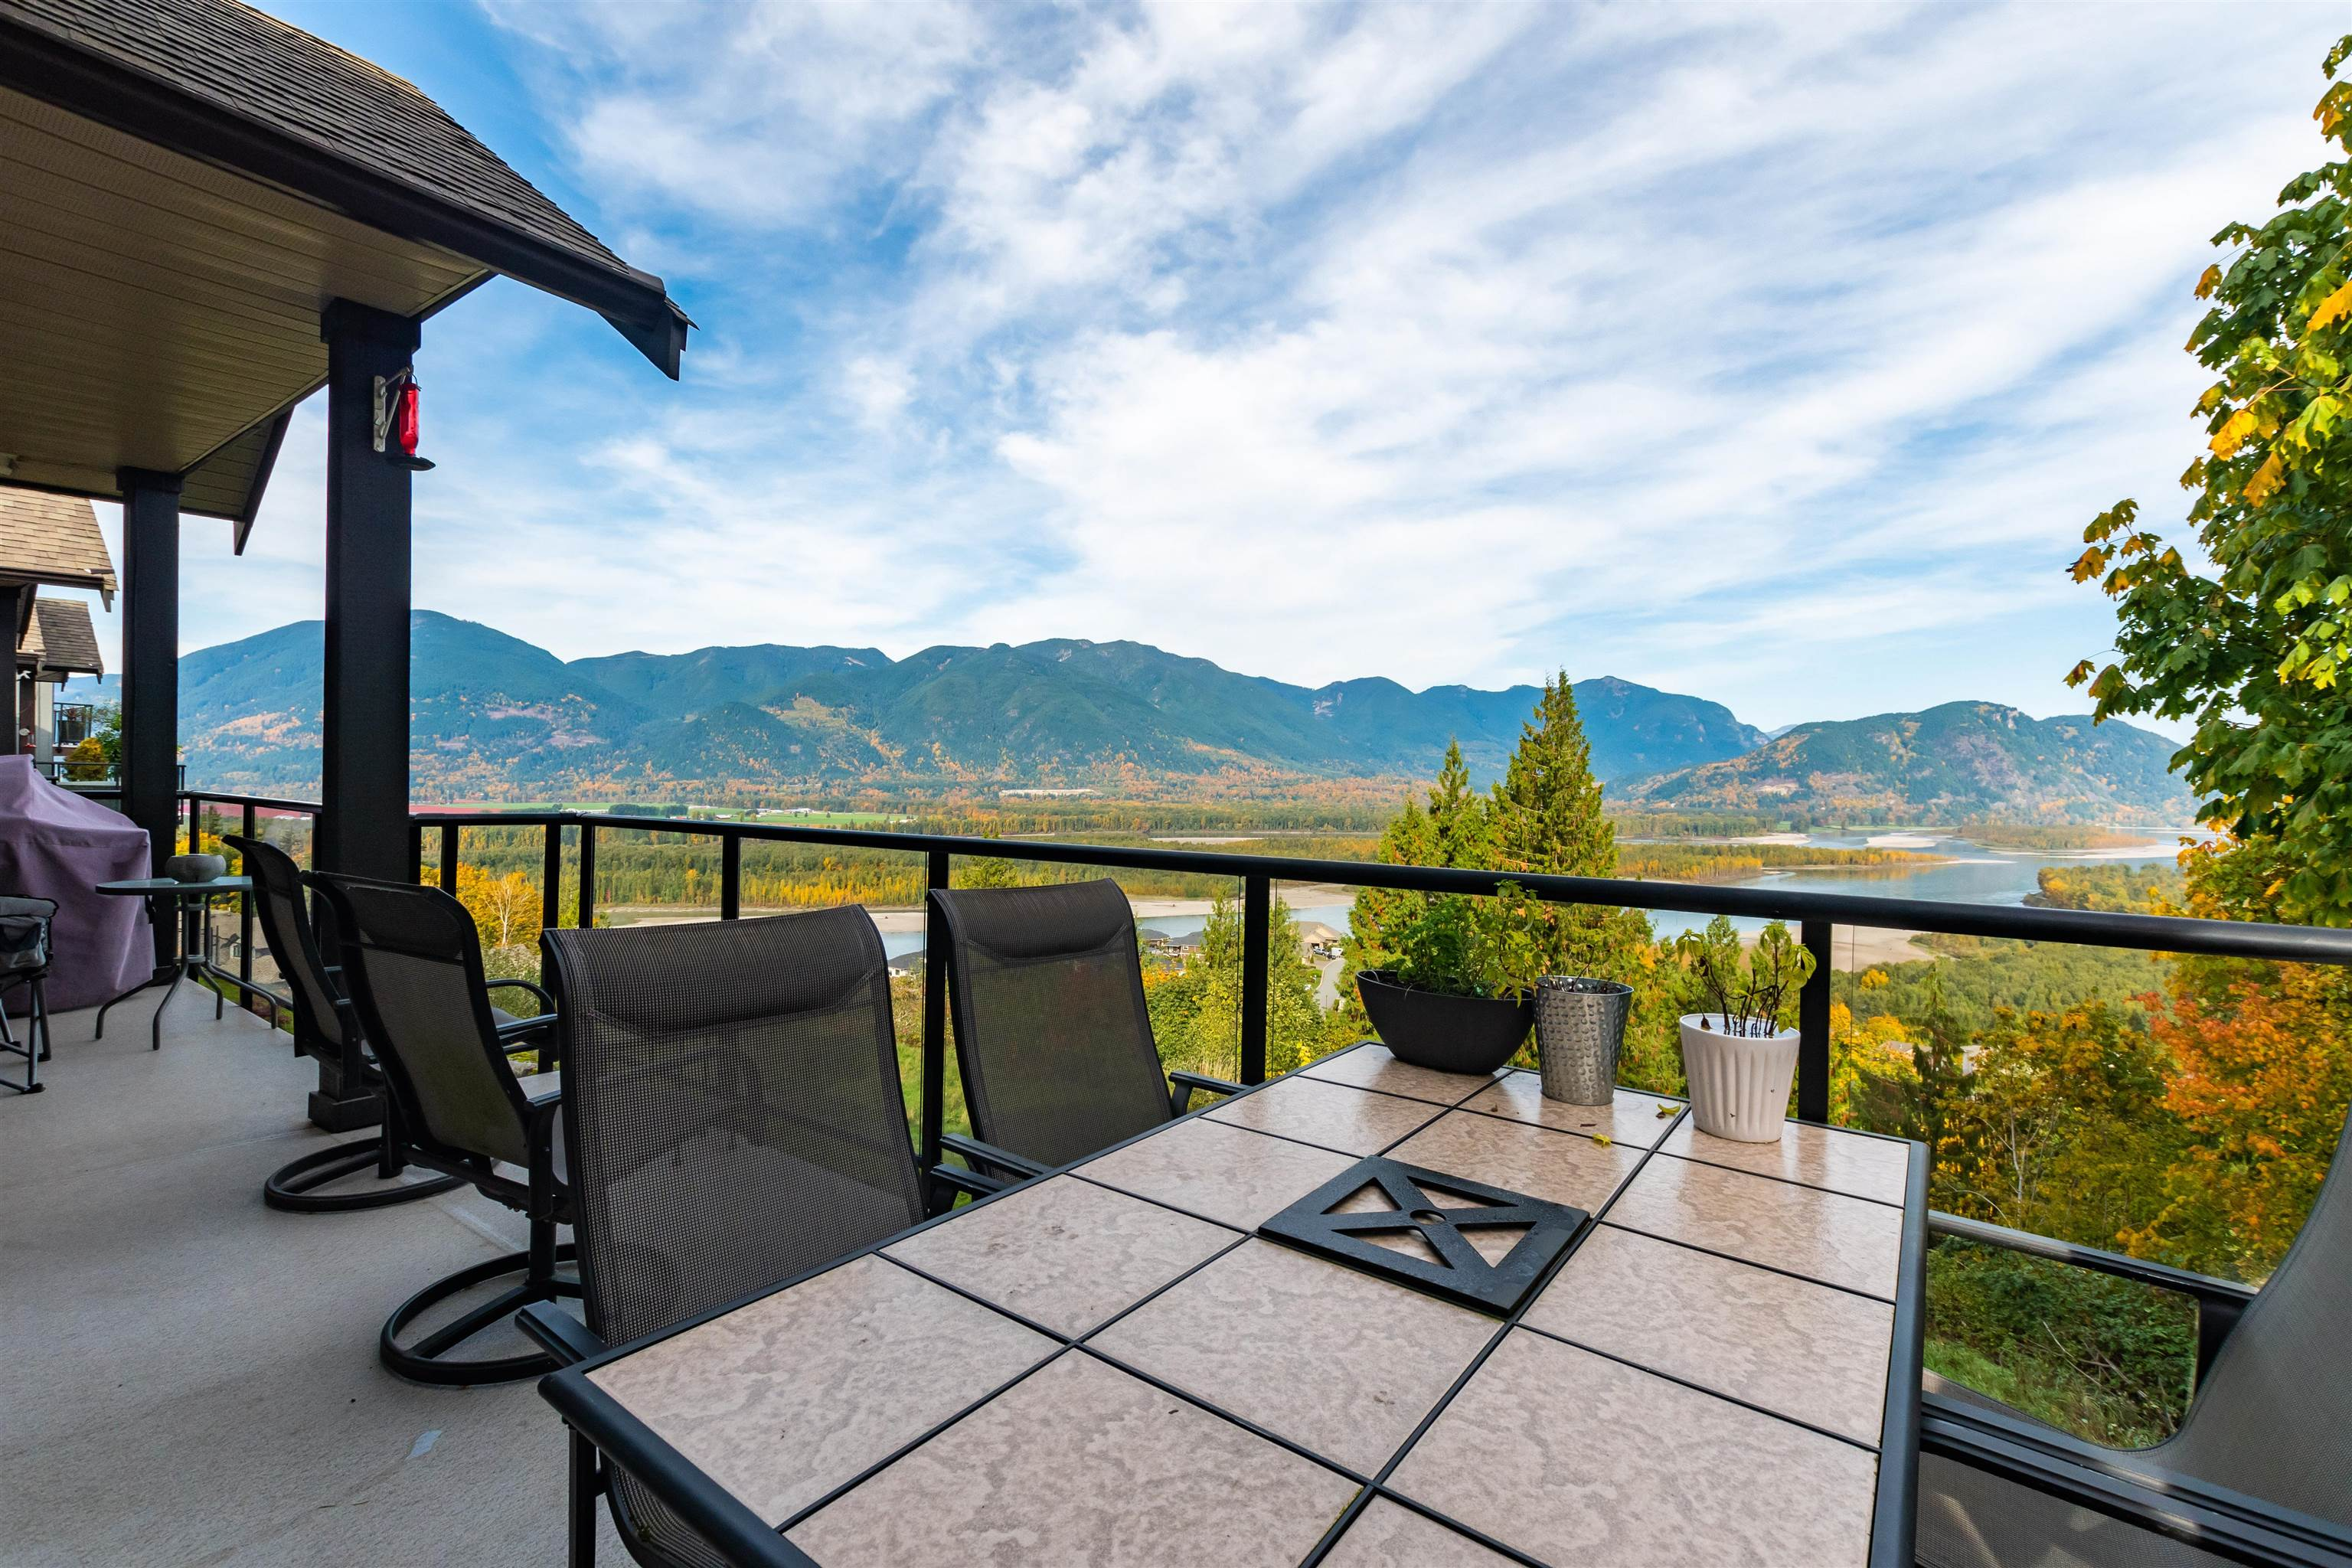 26 43540 ALAMEDA DRIVE - Chilliwack Mountain Townhouse for sale, 4 Bedrooms (R2627541) - #1